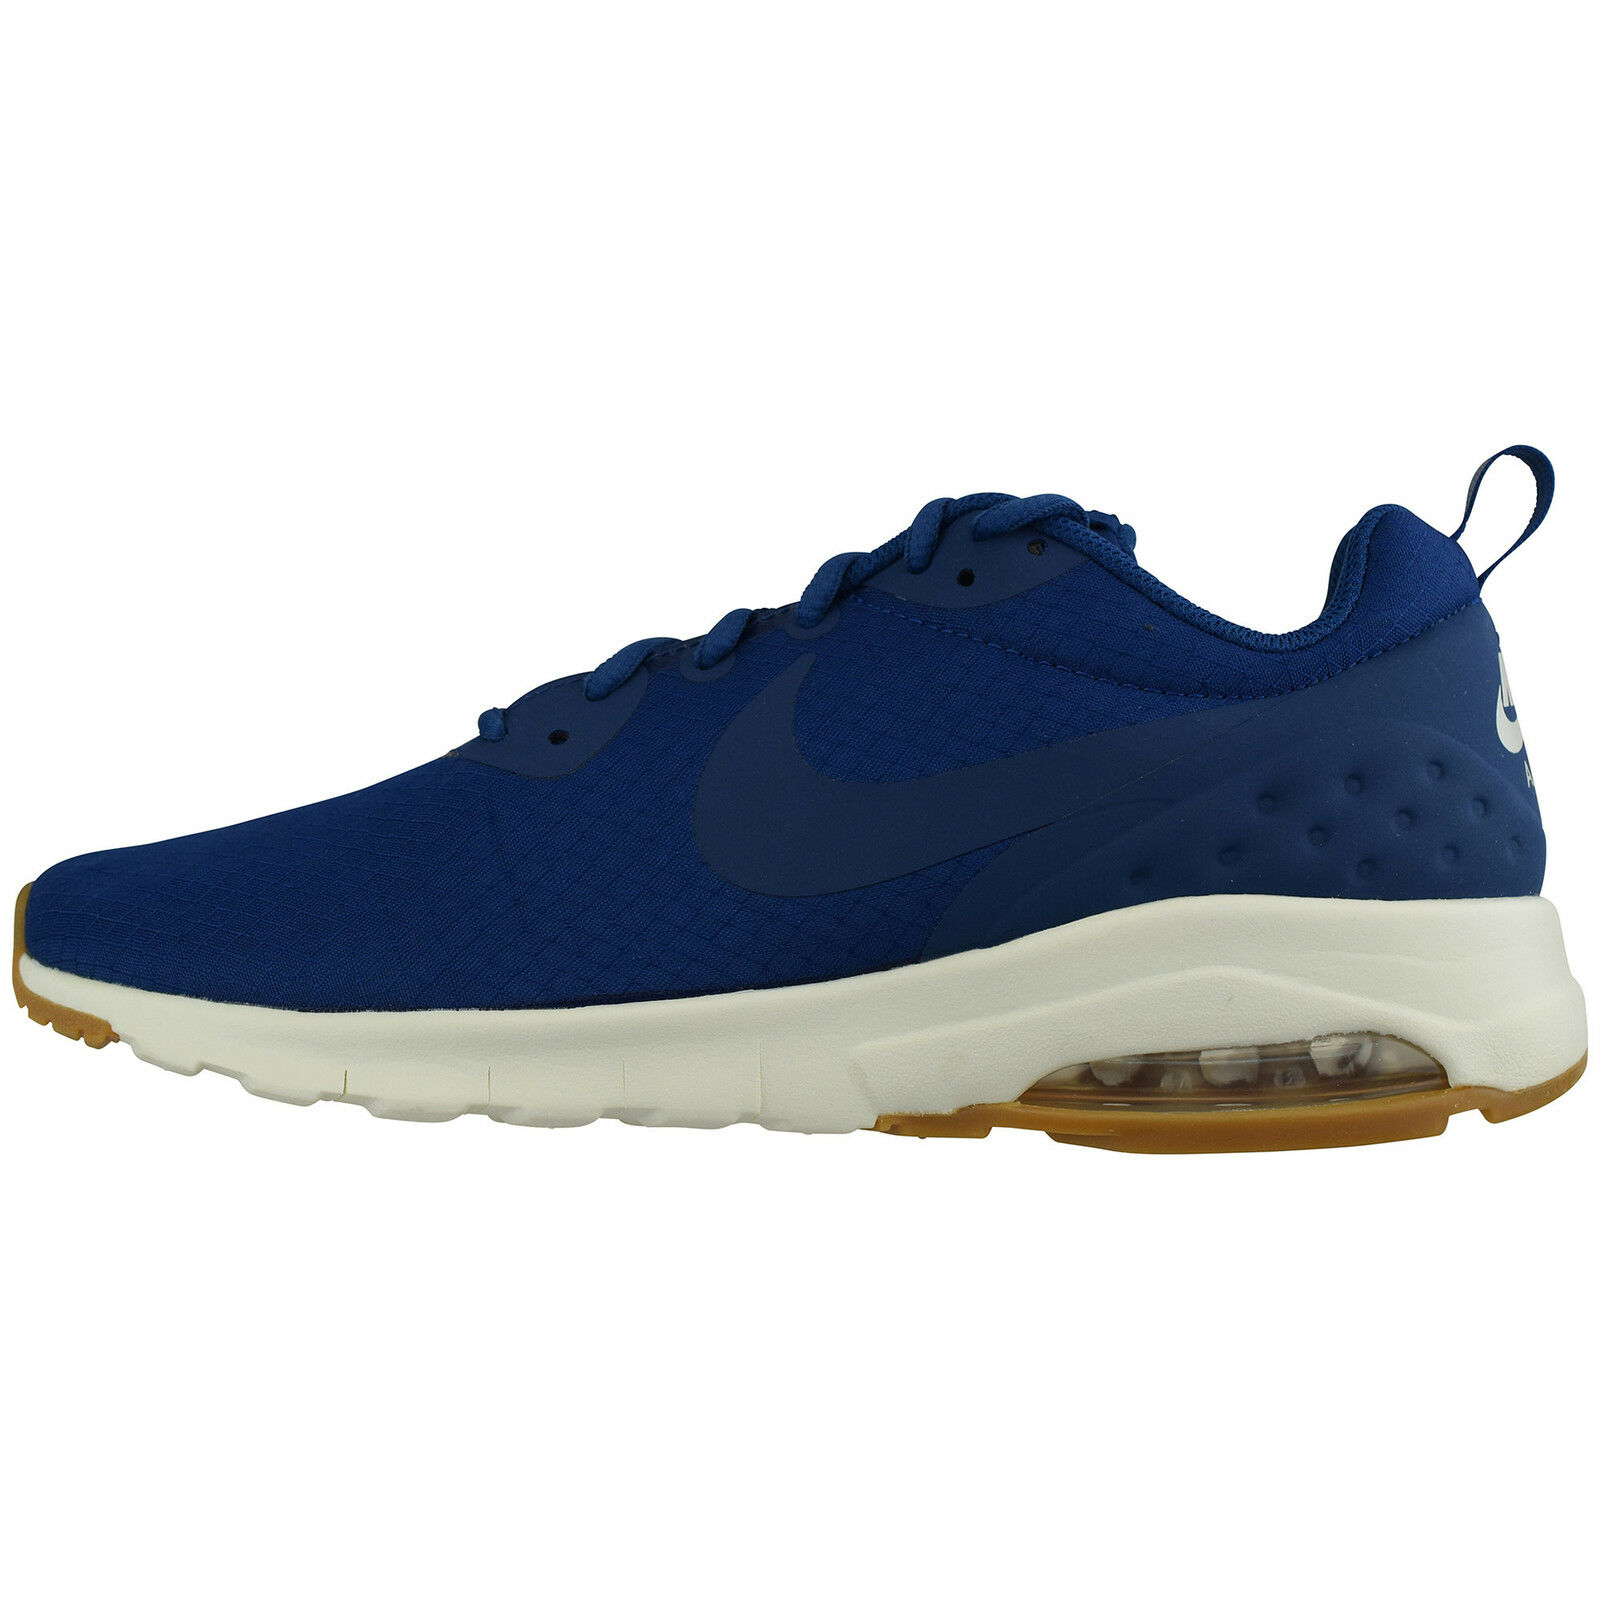 Nike Air Max Motion Lw Se 844836-440 Lifestyle Casual shoes Trainers